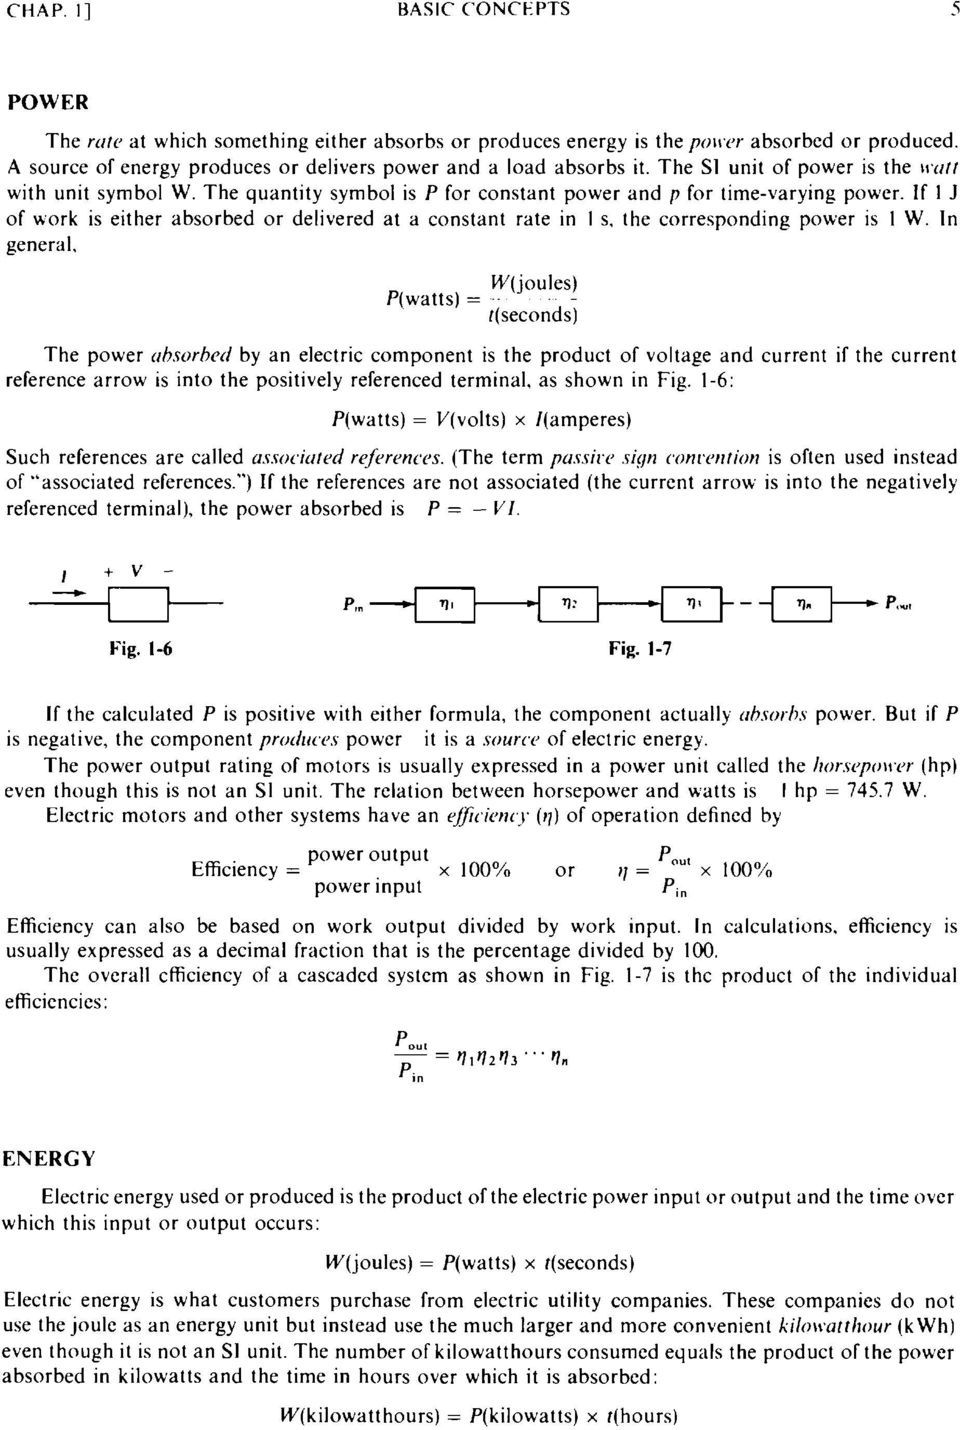 Basic Circuit Analysis Pdf Electronic Circuits Schaum Series If 1 J Of Work Is Either Absorbed Or Delivered At A Constant Rate In